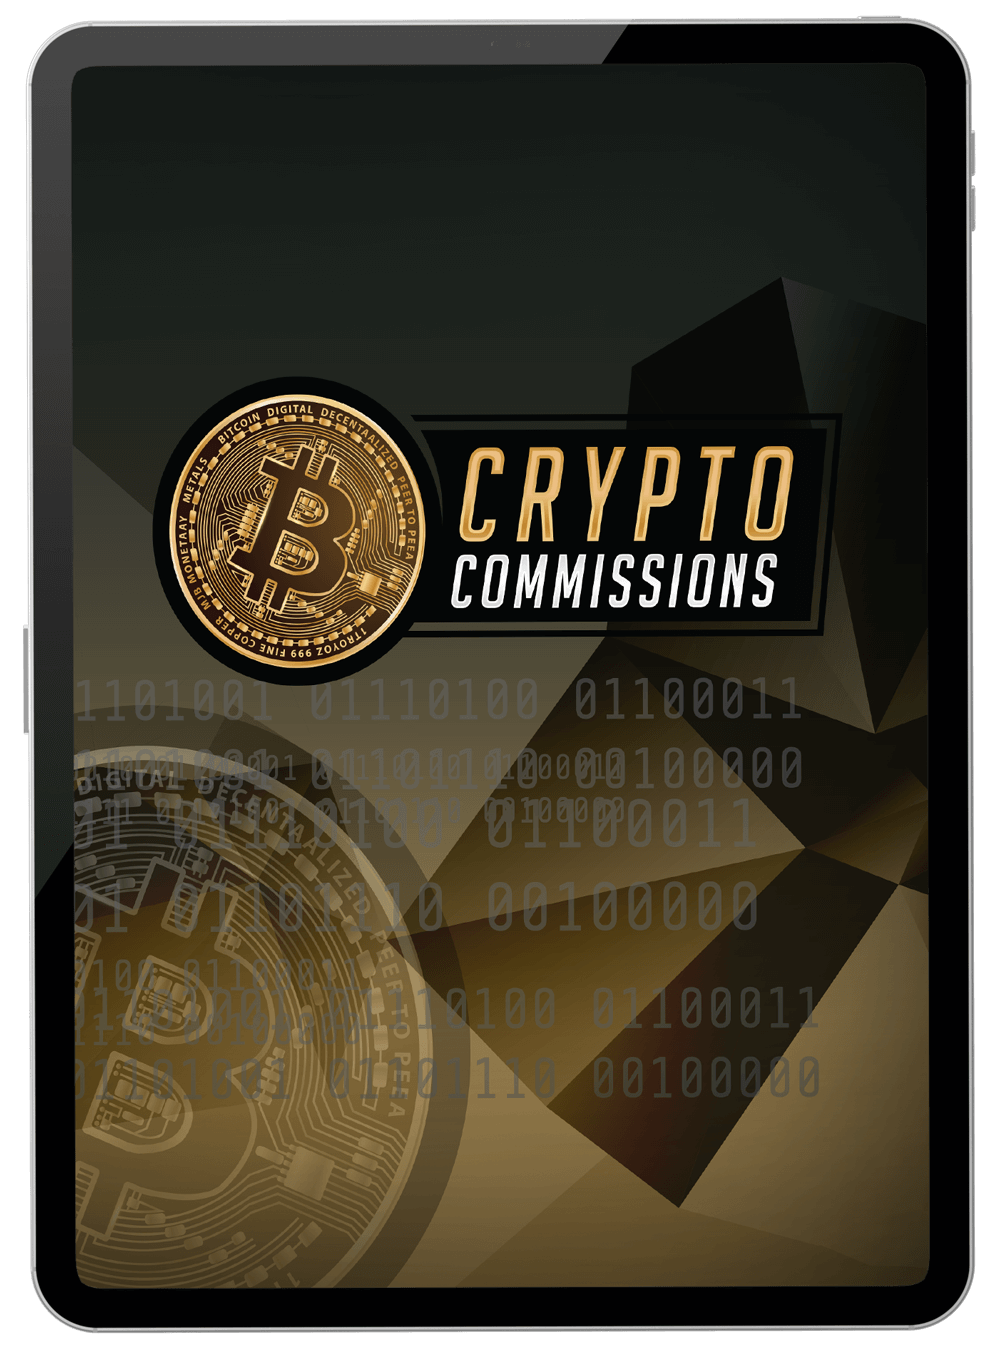 CRYPTO COMMISSIONS